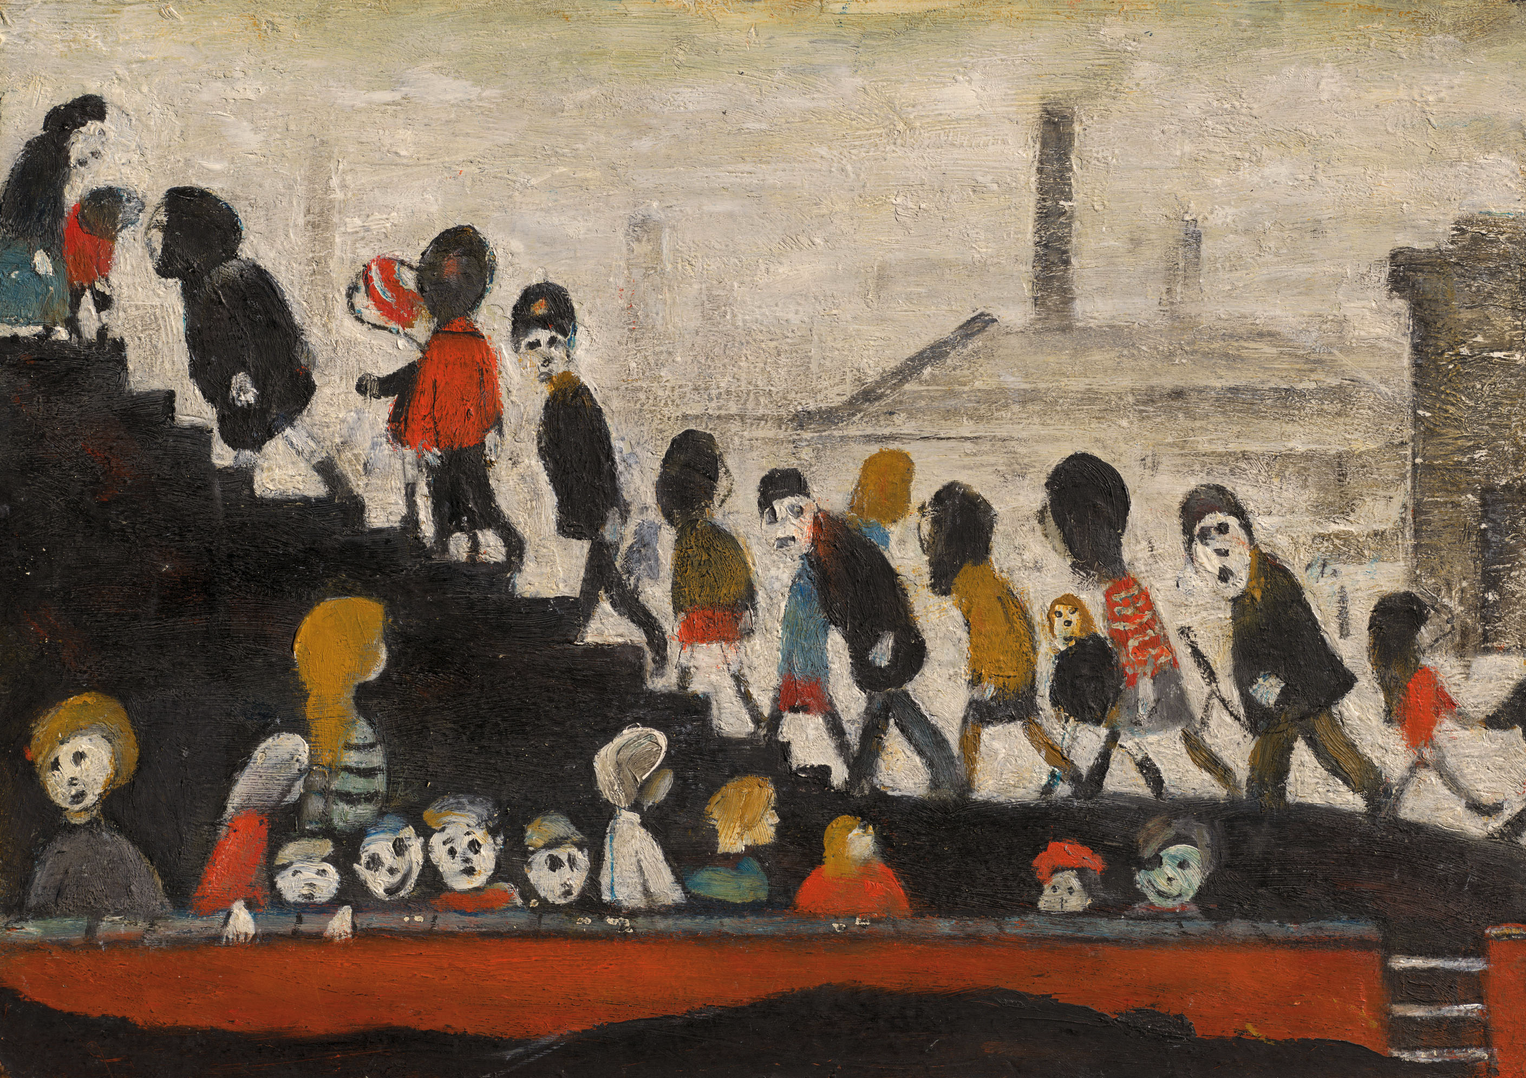 Children Walking up Steps (c1960s) by Laurence Stephen Lowry (1887 - 1976), English artist.